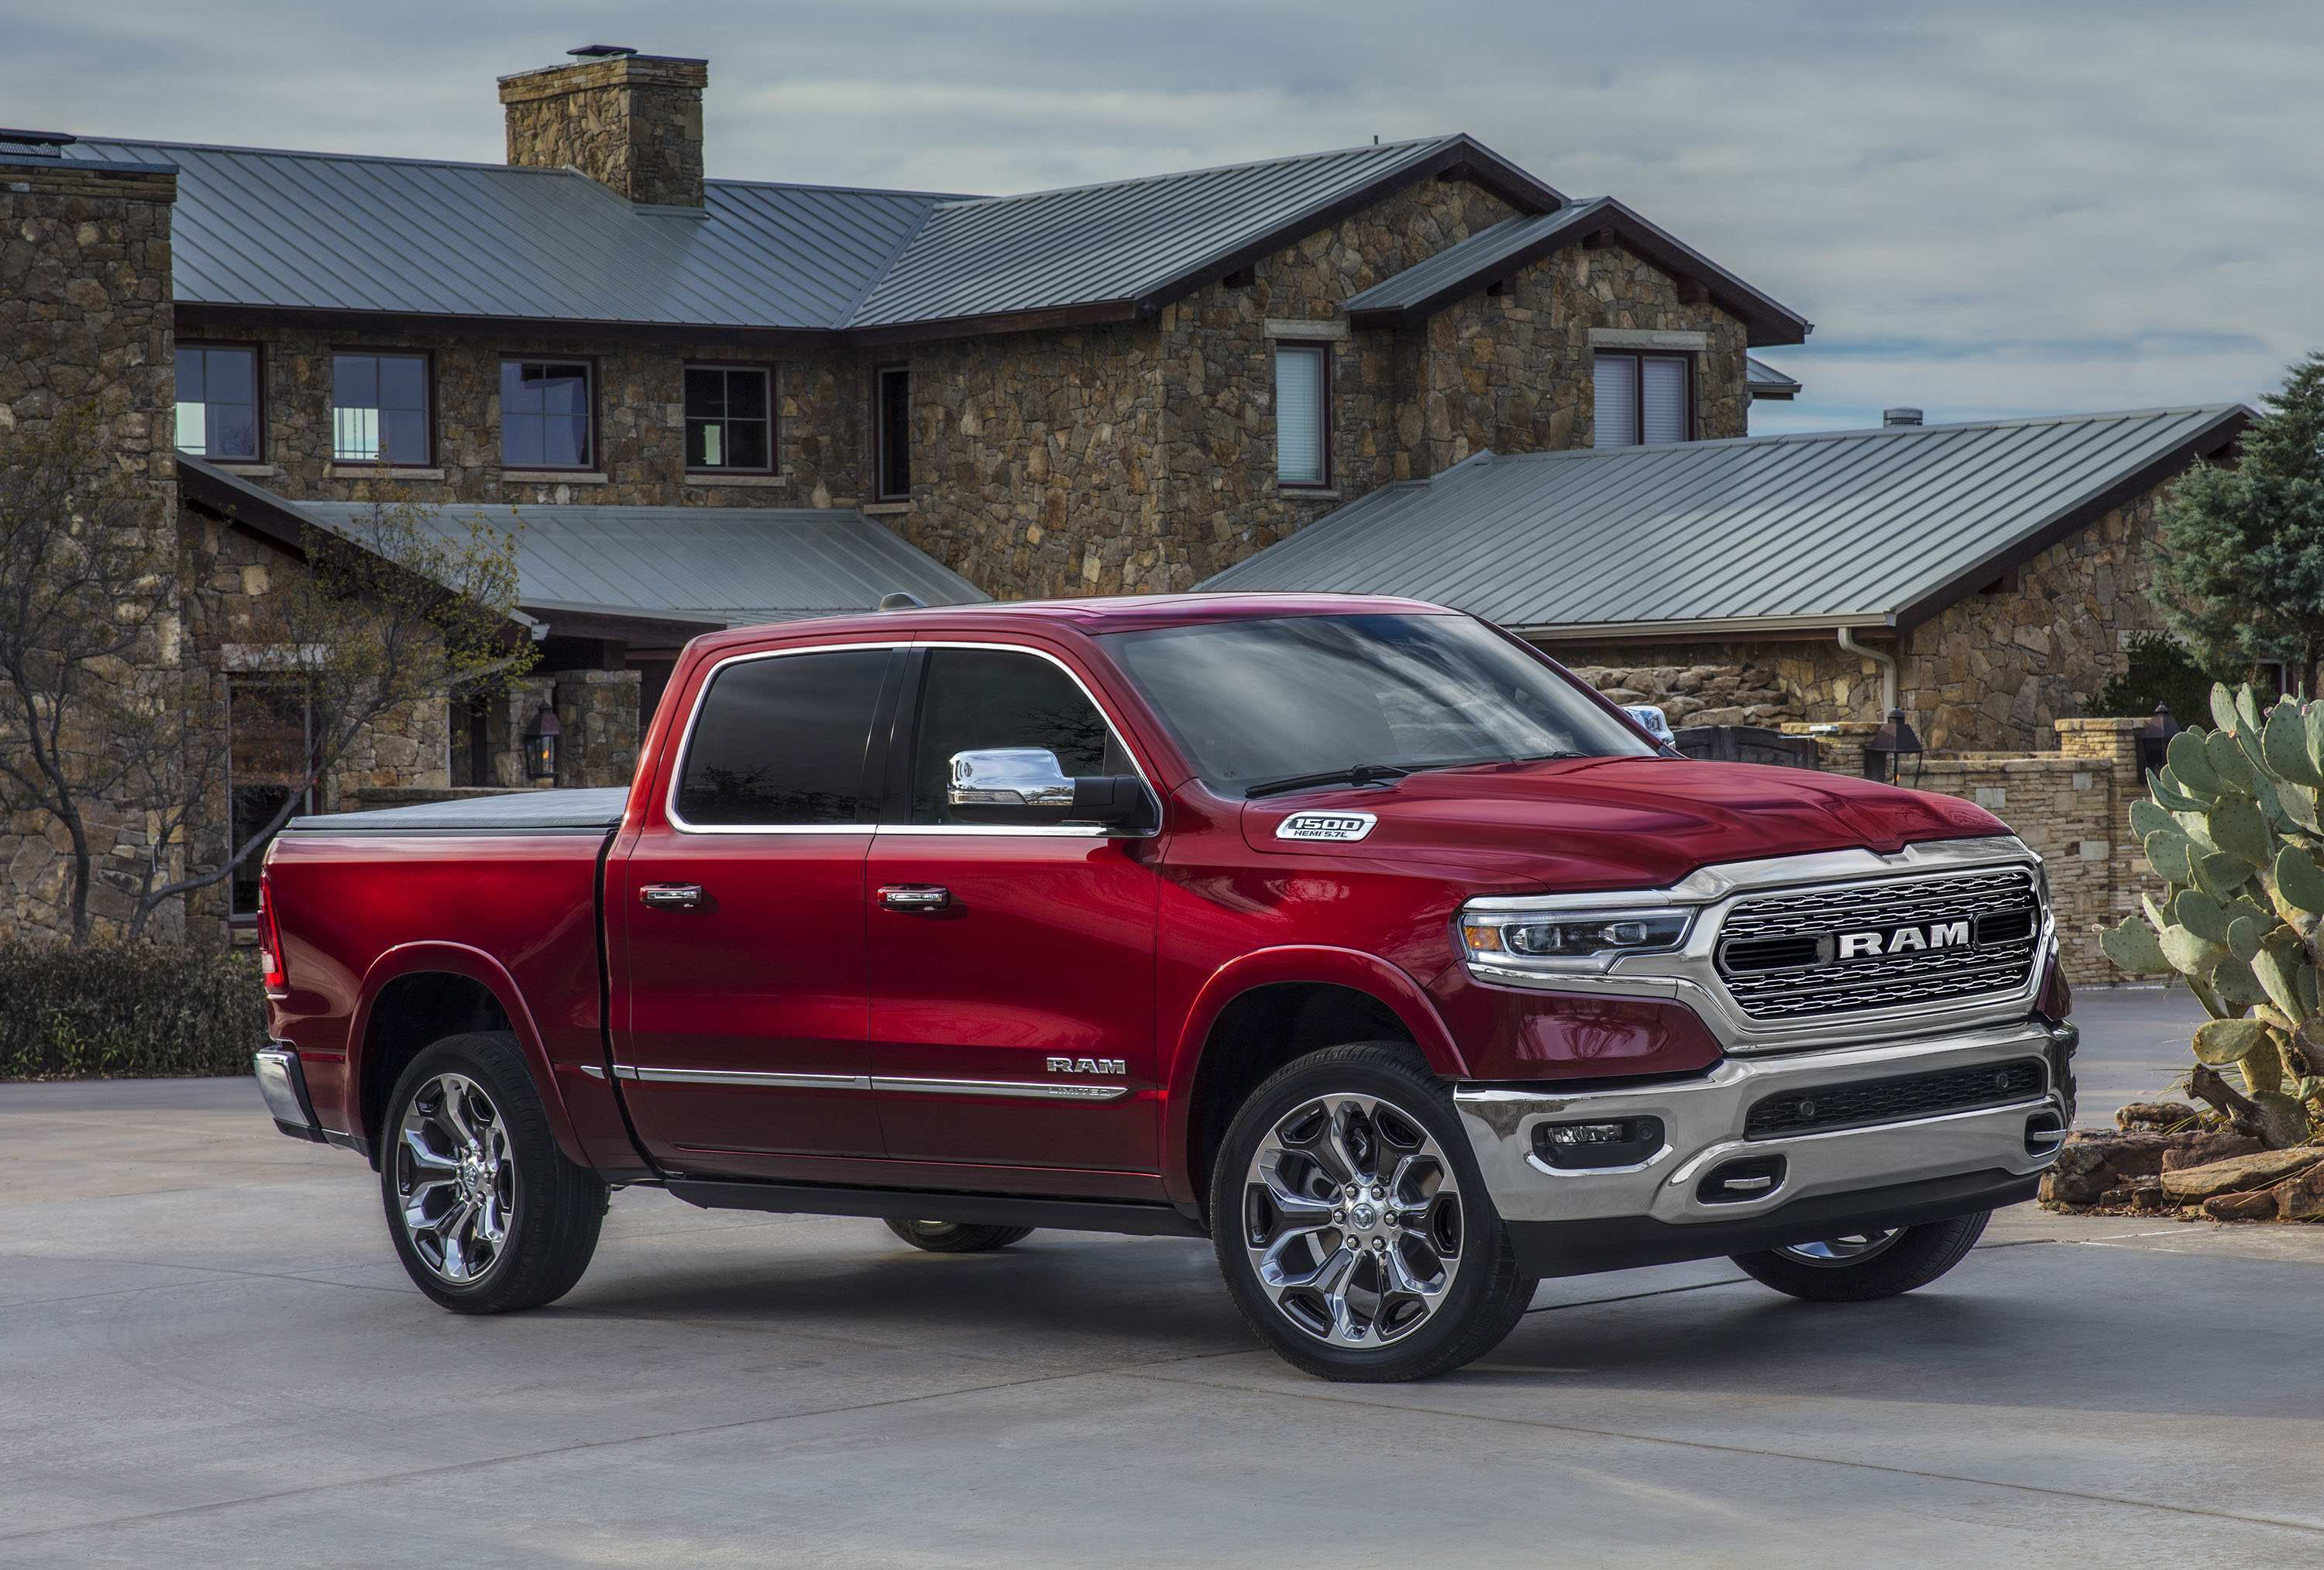 72 Best Review 2020 Dodge Ram Release for 2020 Dodge Ram